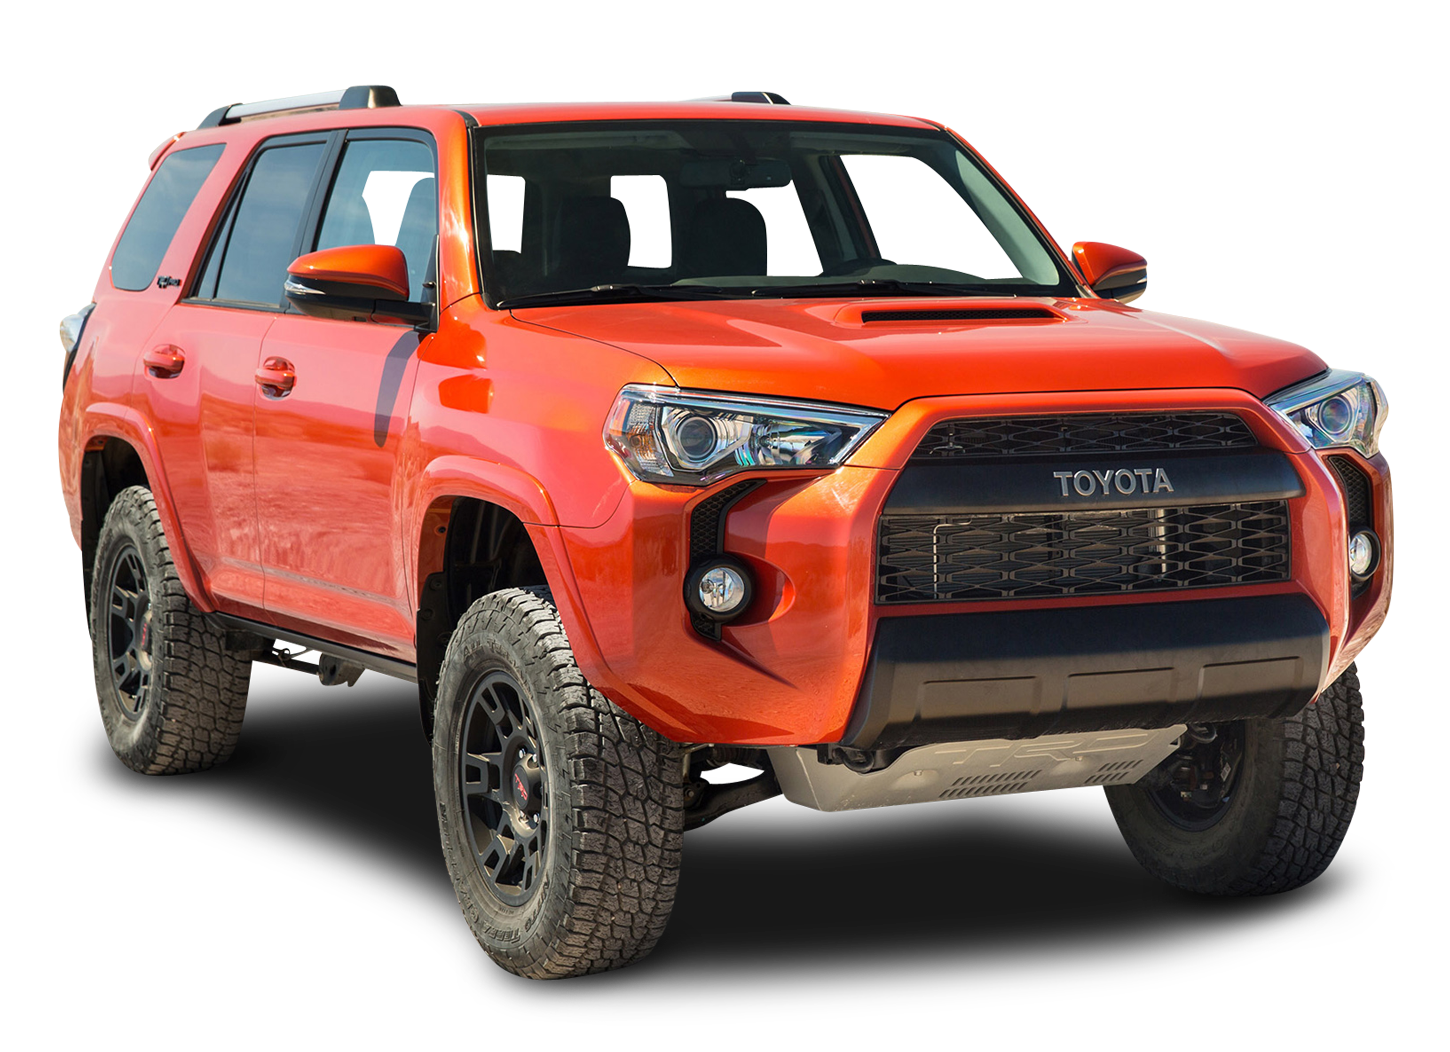 Toyota TRD Pro Orange Hill Car PNG Image.